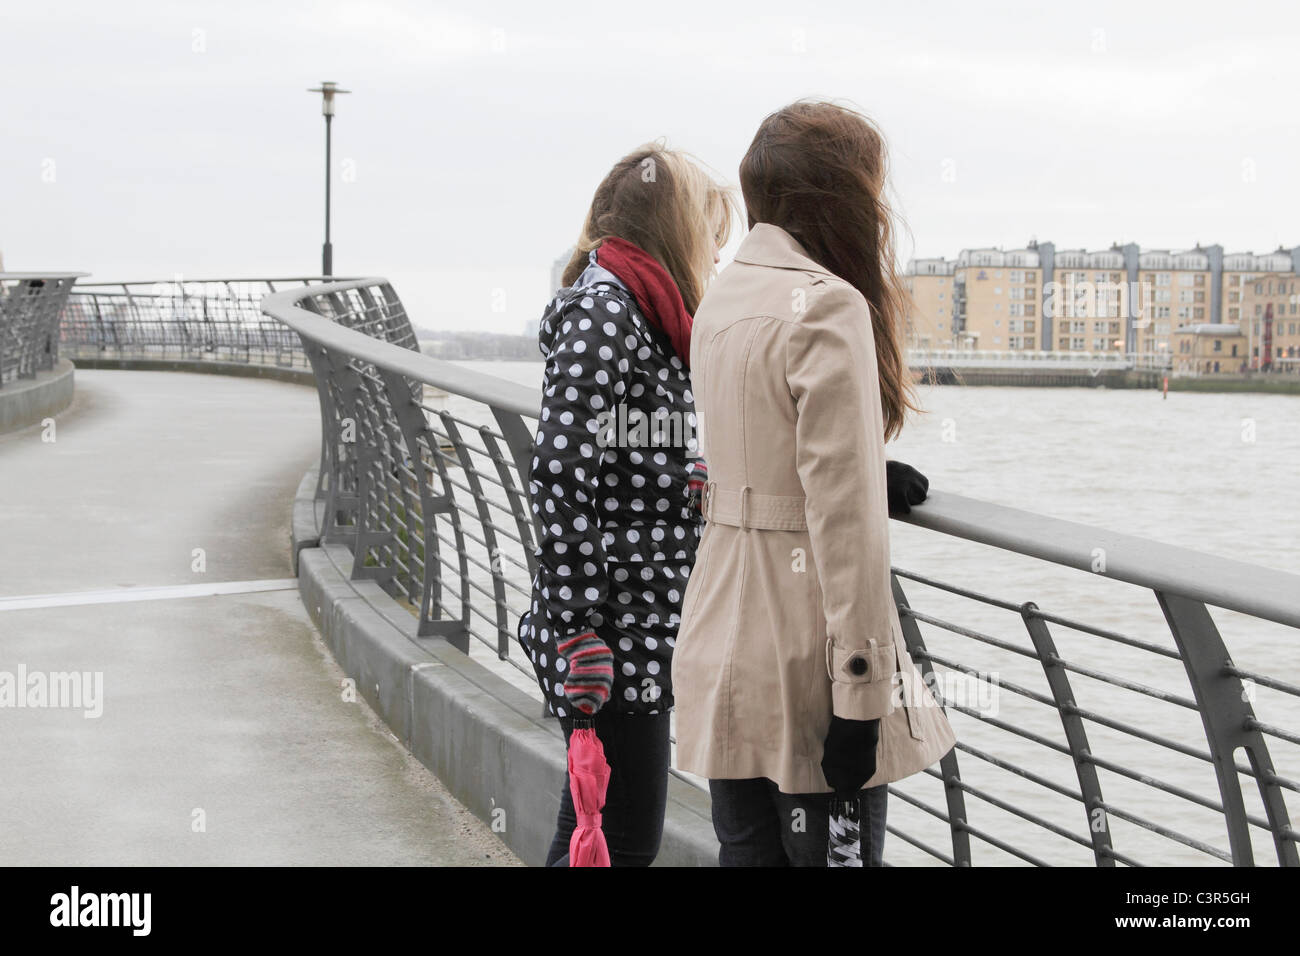 2 young women looking at river - Stock Image